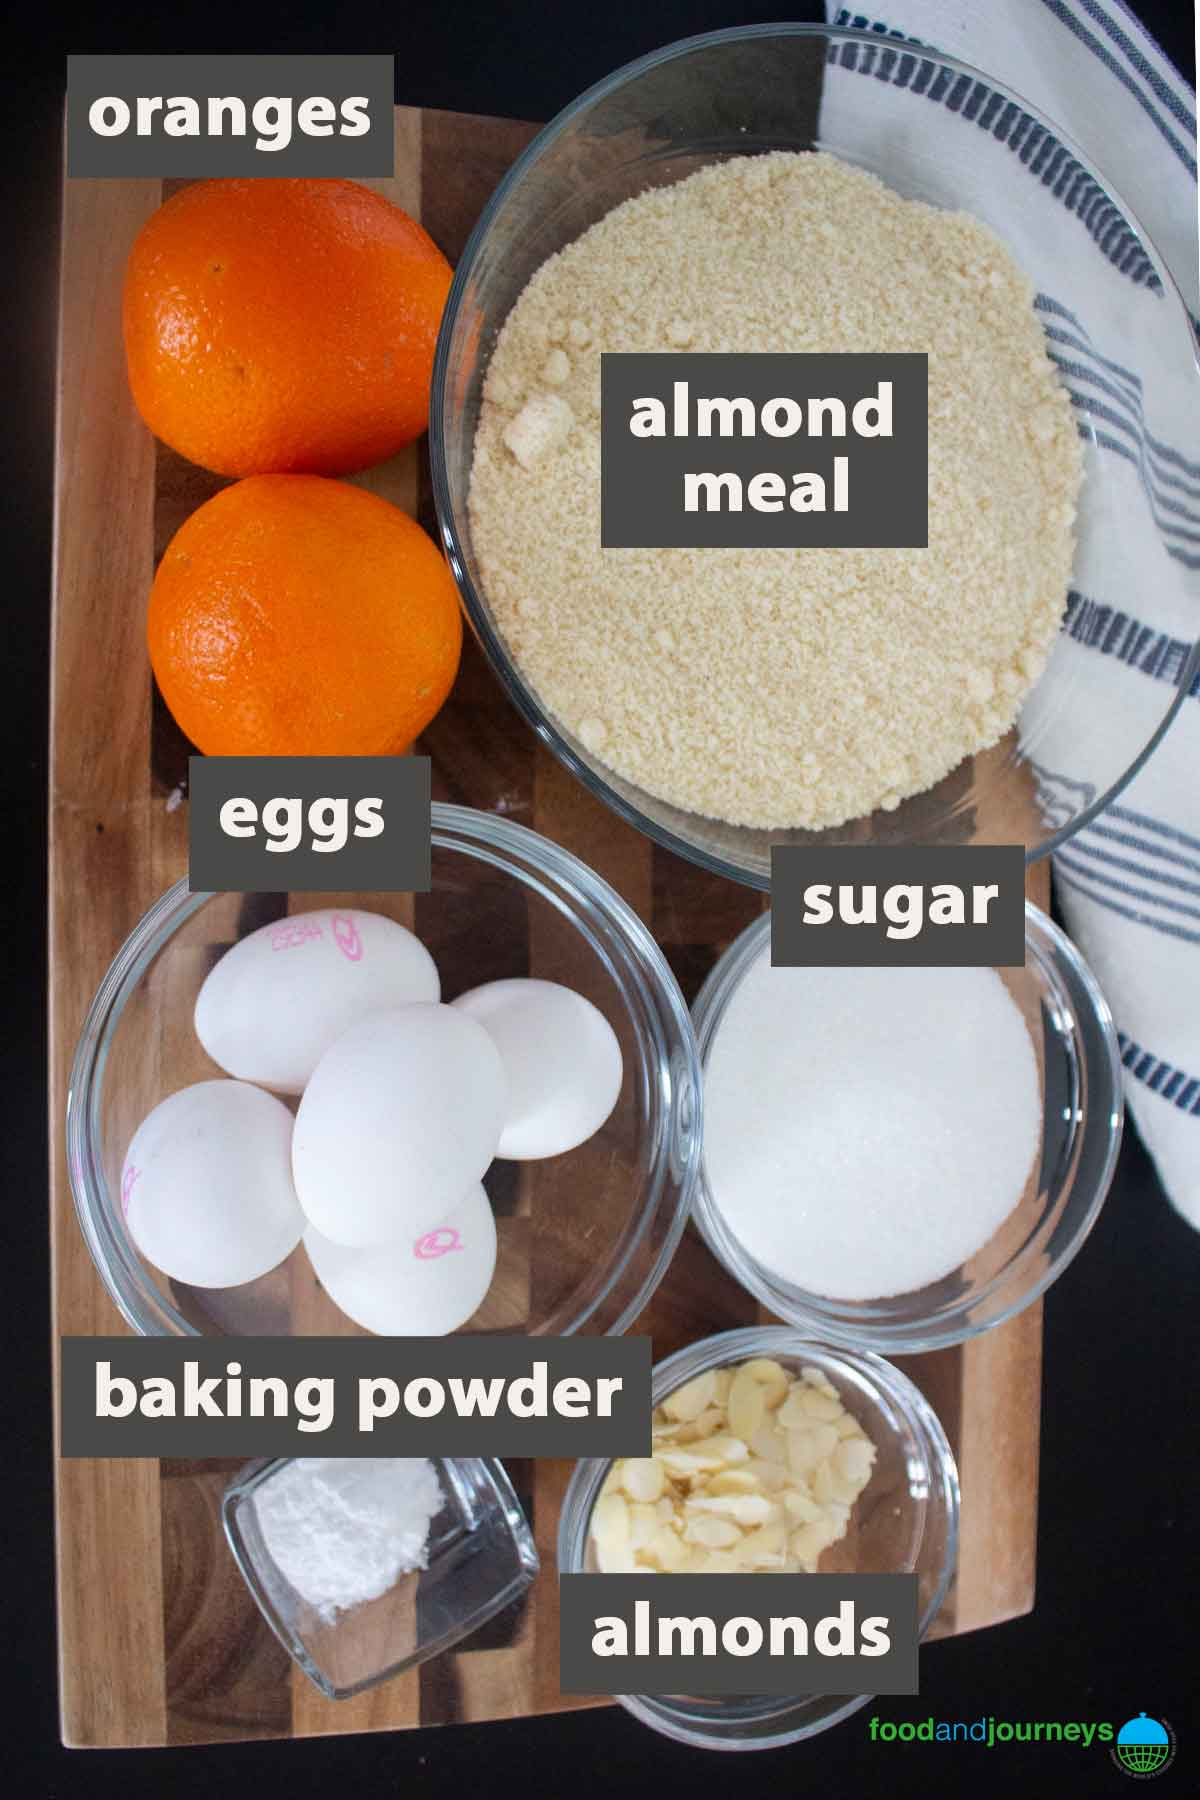 An updated image showing the ingredients you need to prepare almond and orange cake at home.